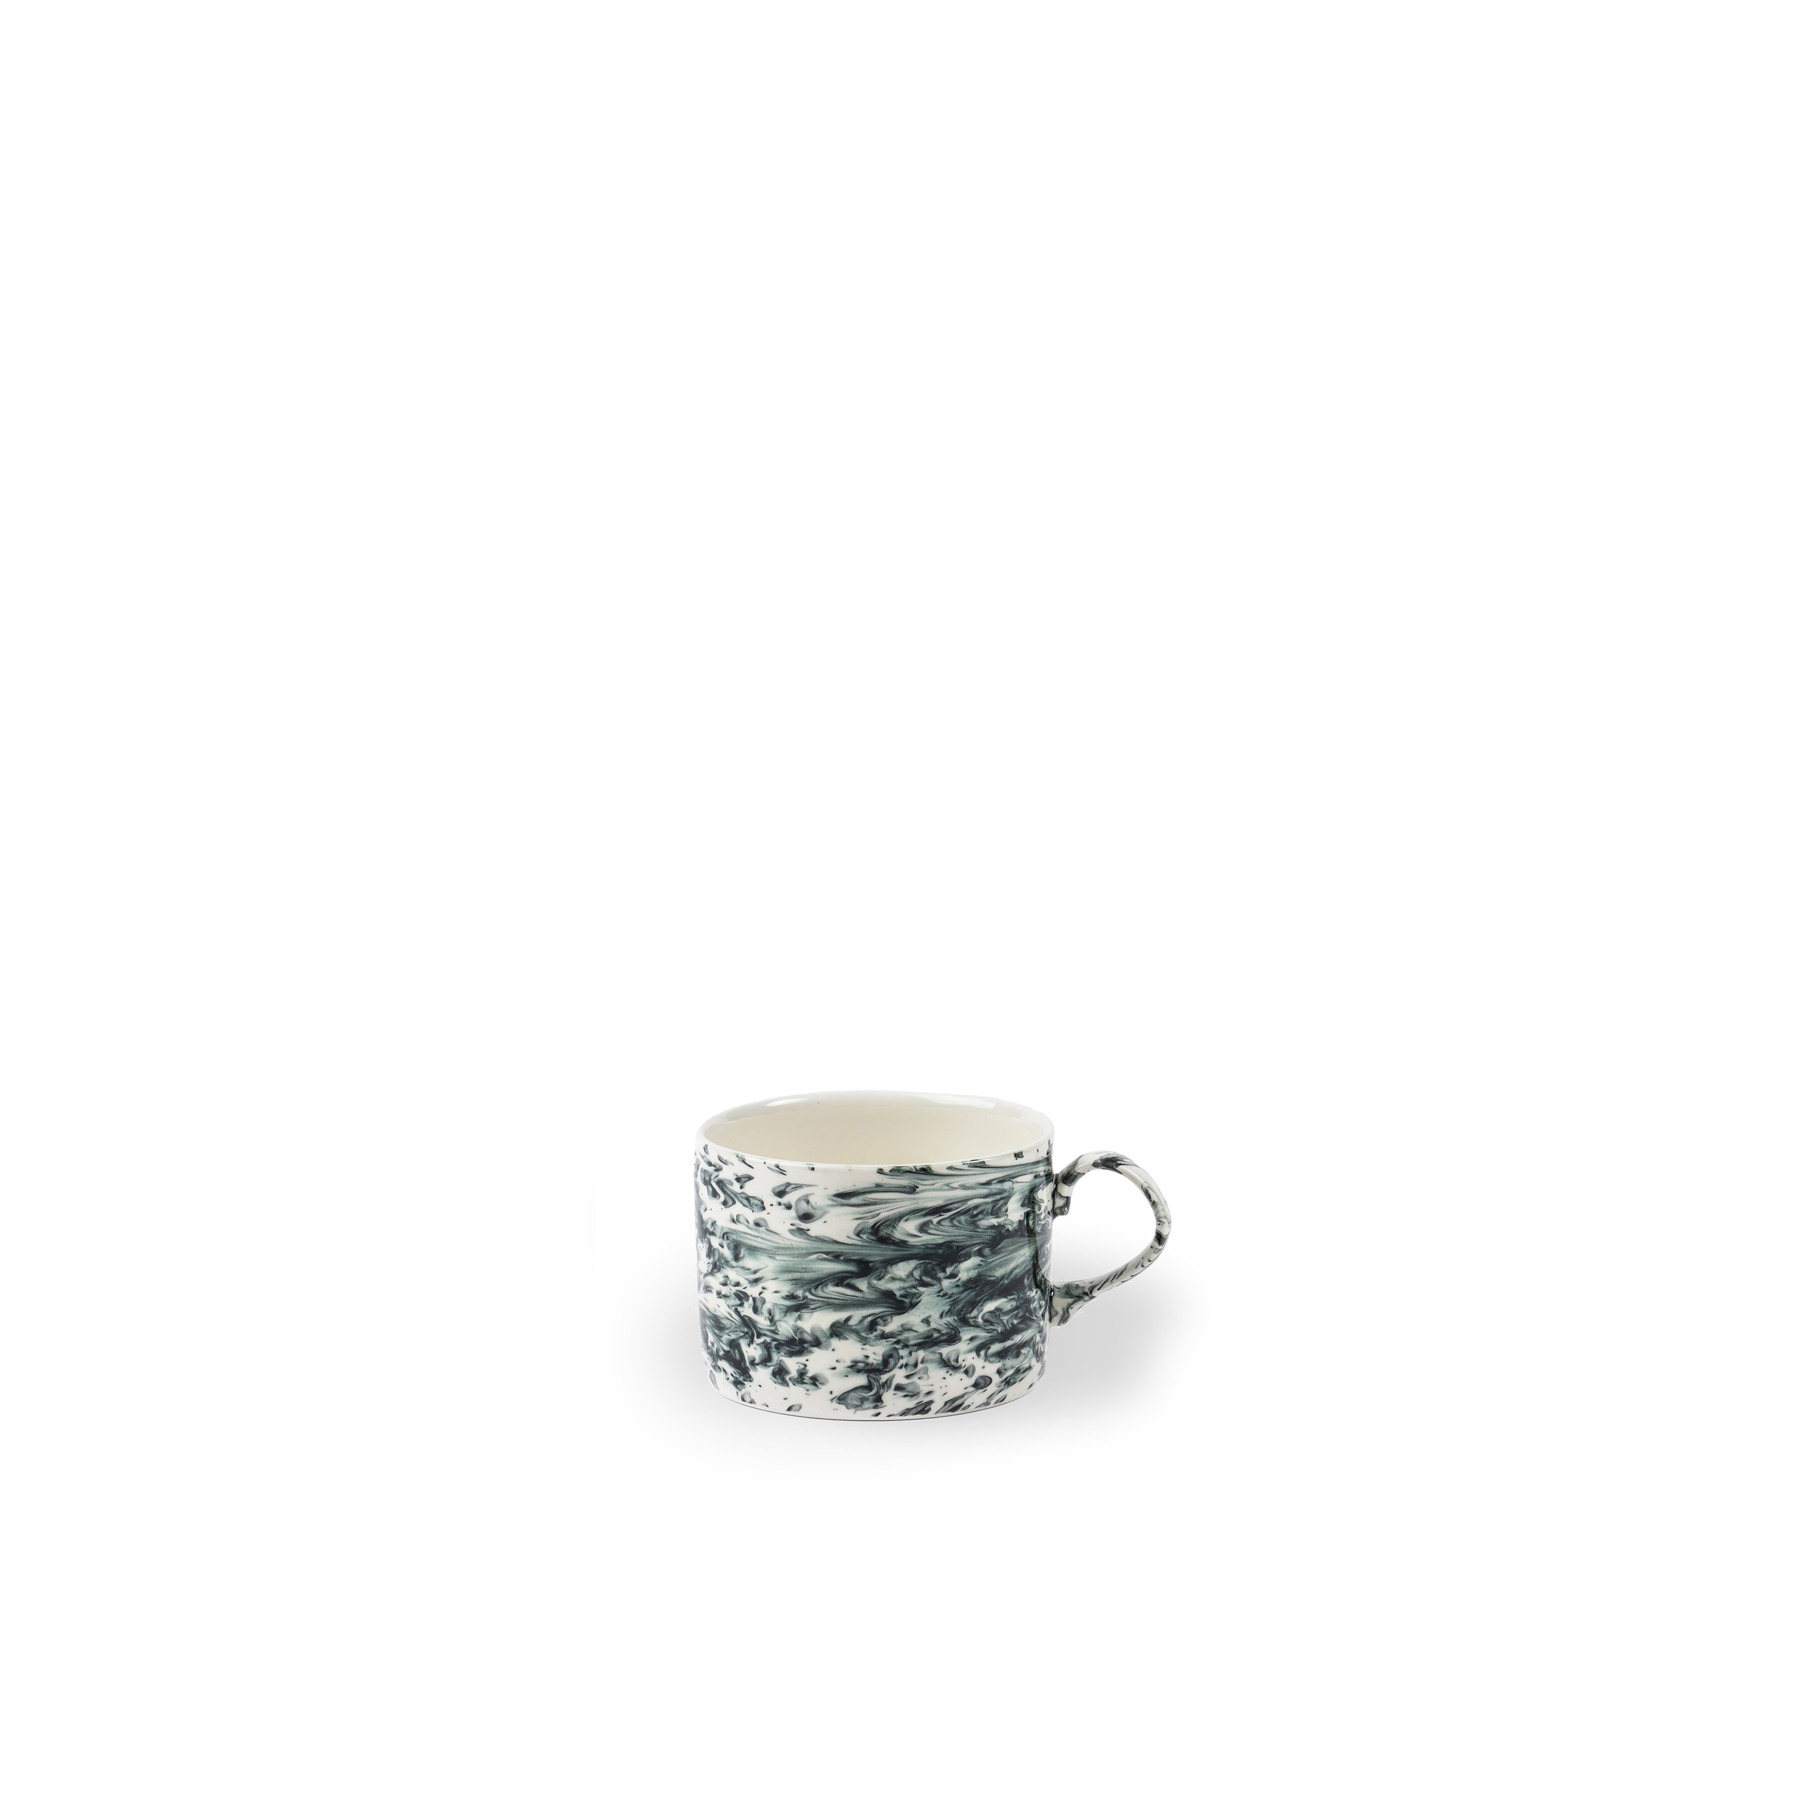 Slick Mug - Slick by 1882 Ltd. is a collection of uniquely hand glazed tableware – a true testament to the skill of the Potter. So many factors make up the pattern of the glaze; from the heat of the piece to the weight of the glaze. The Potter works each piece individually making each item unique.